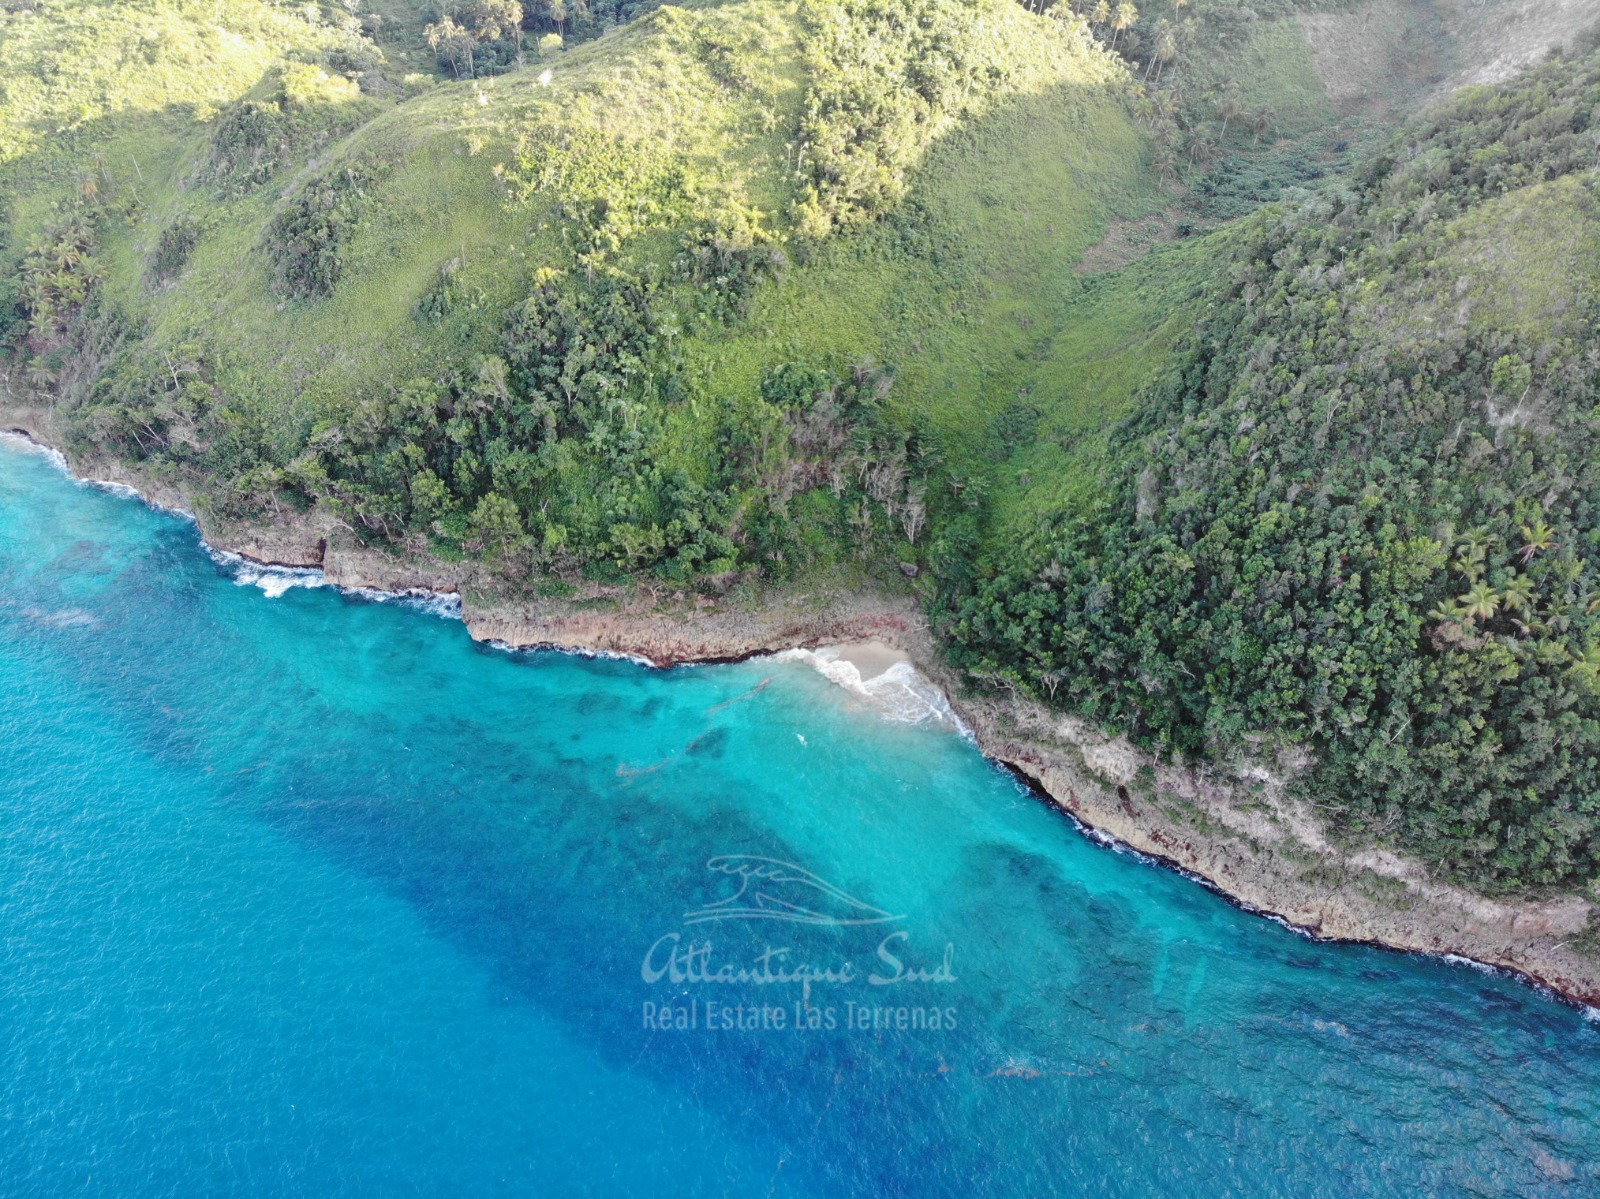 Cliff Land for Sale Las Terrenas 5.jpeg